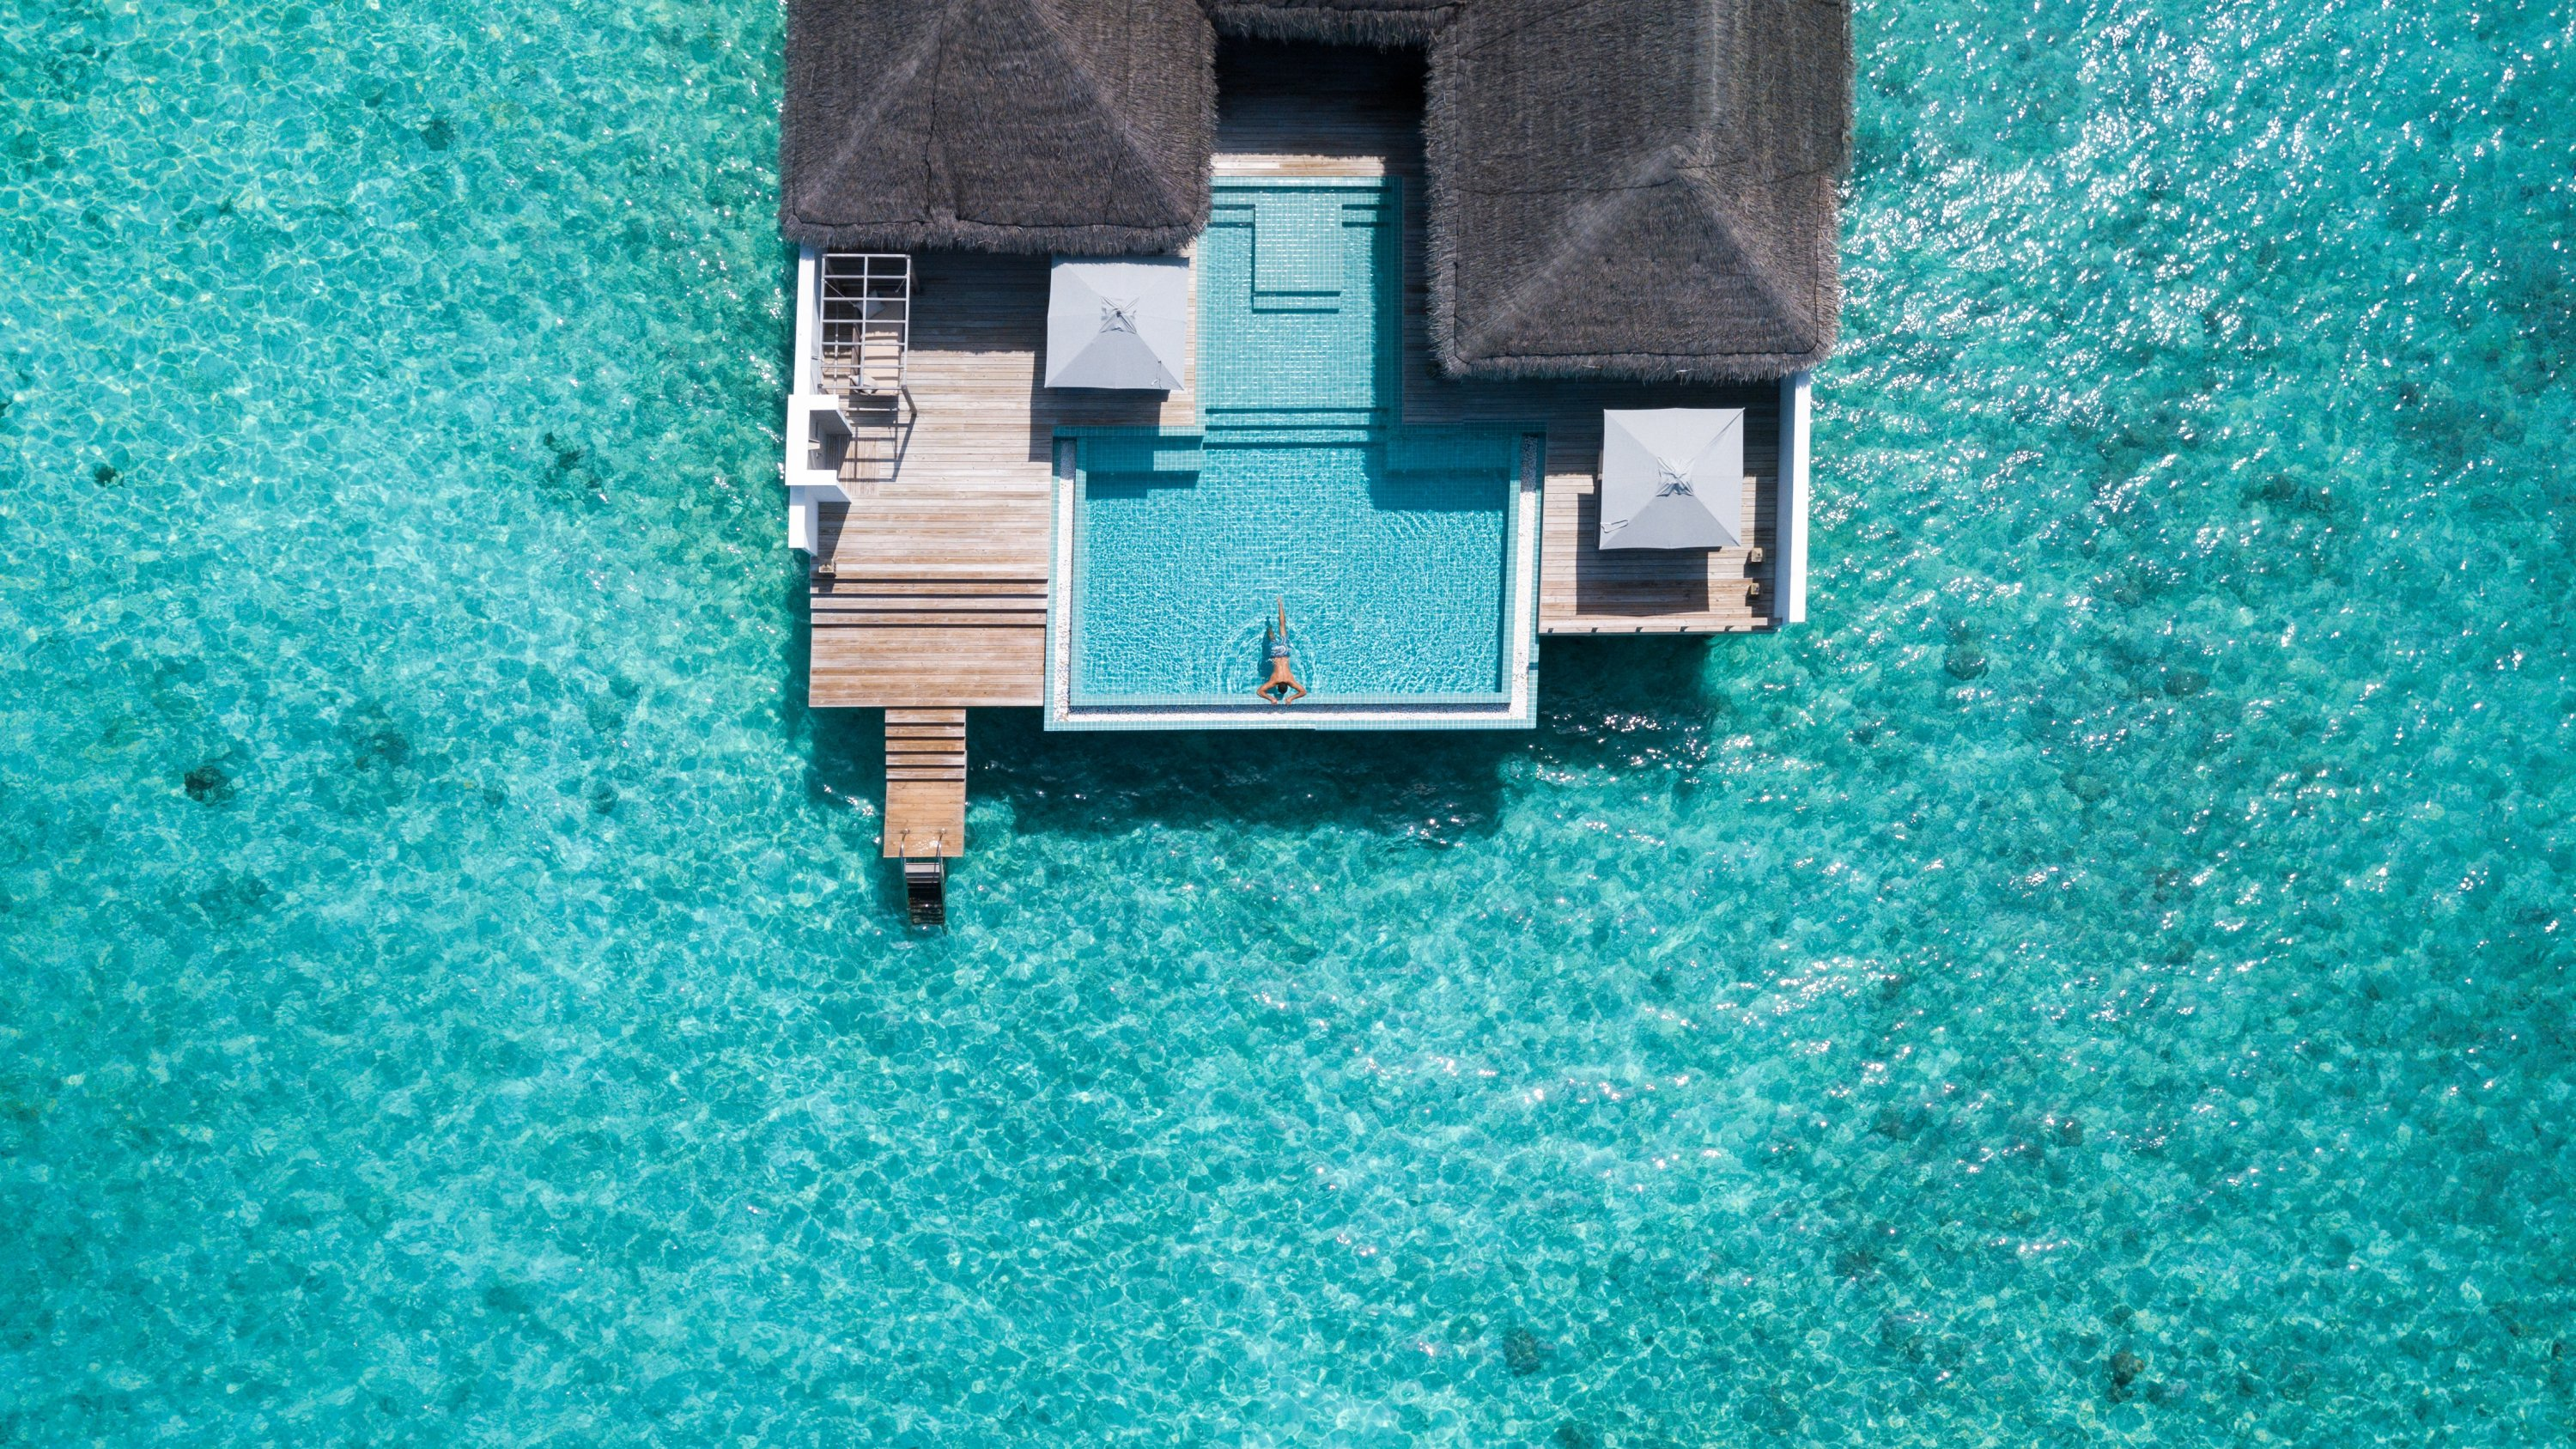 Finolhu's 'Rockstar' suite boasts an impressive 460 square meters of living space as well as an 8-meter infinity pool. (Photo courtesy of Finolhu Maldives)